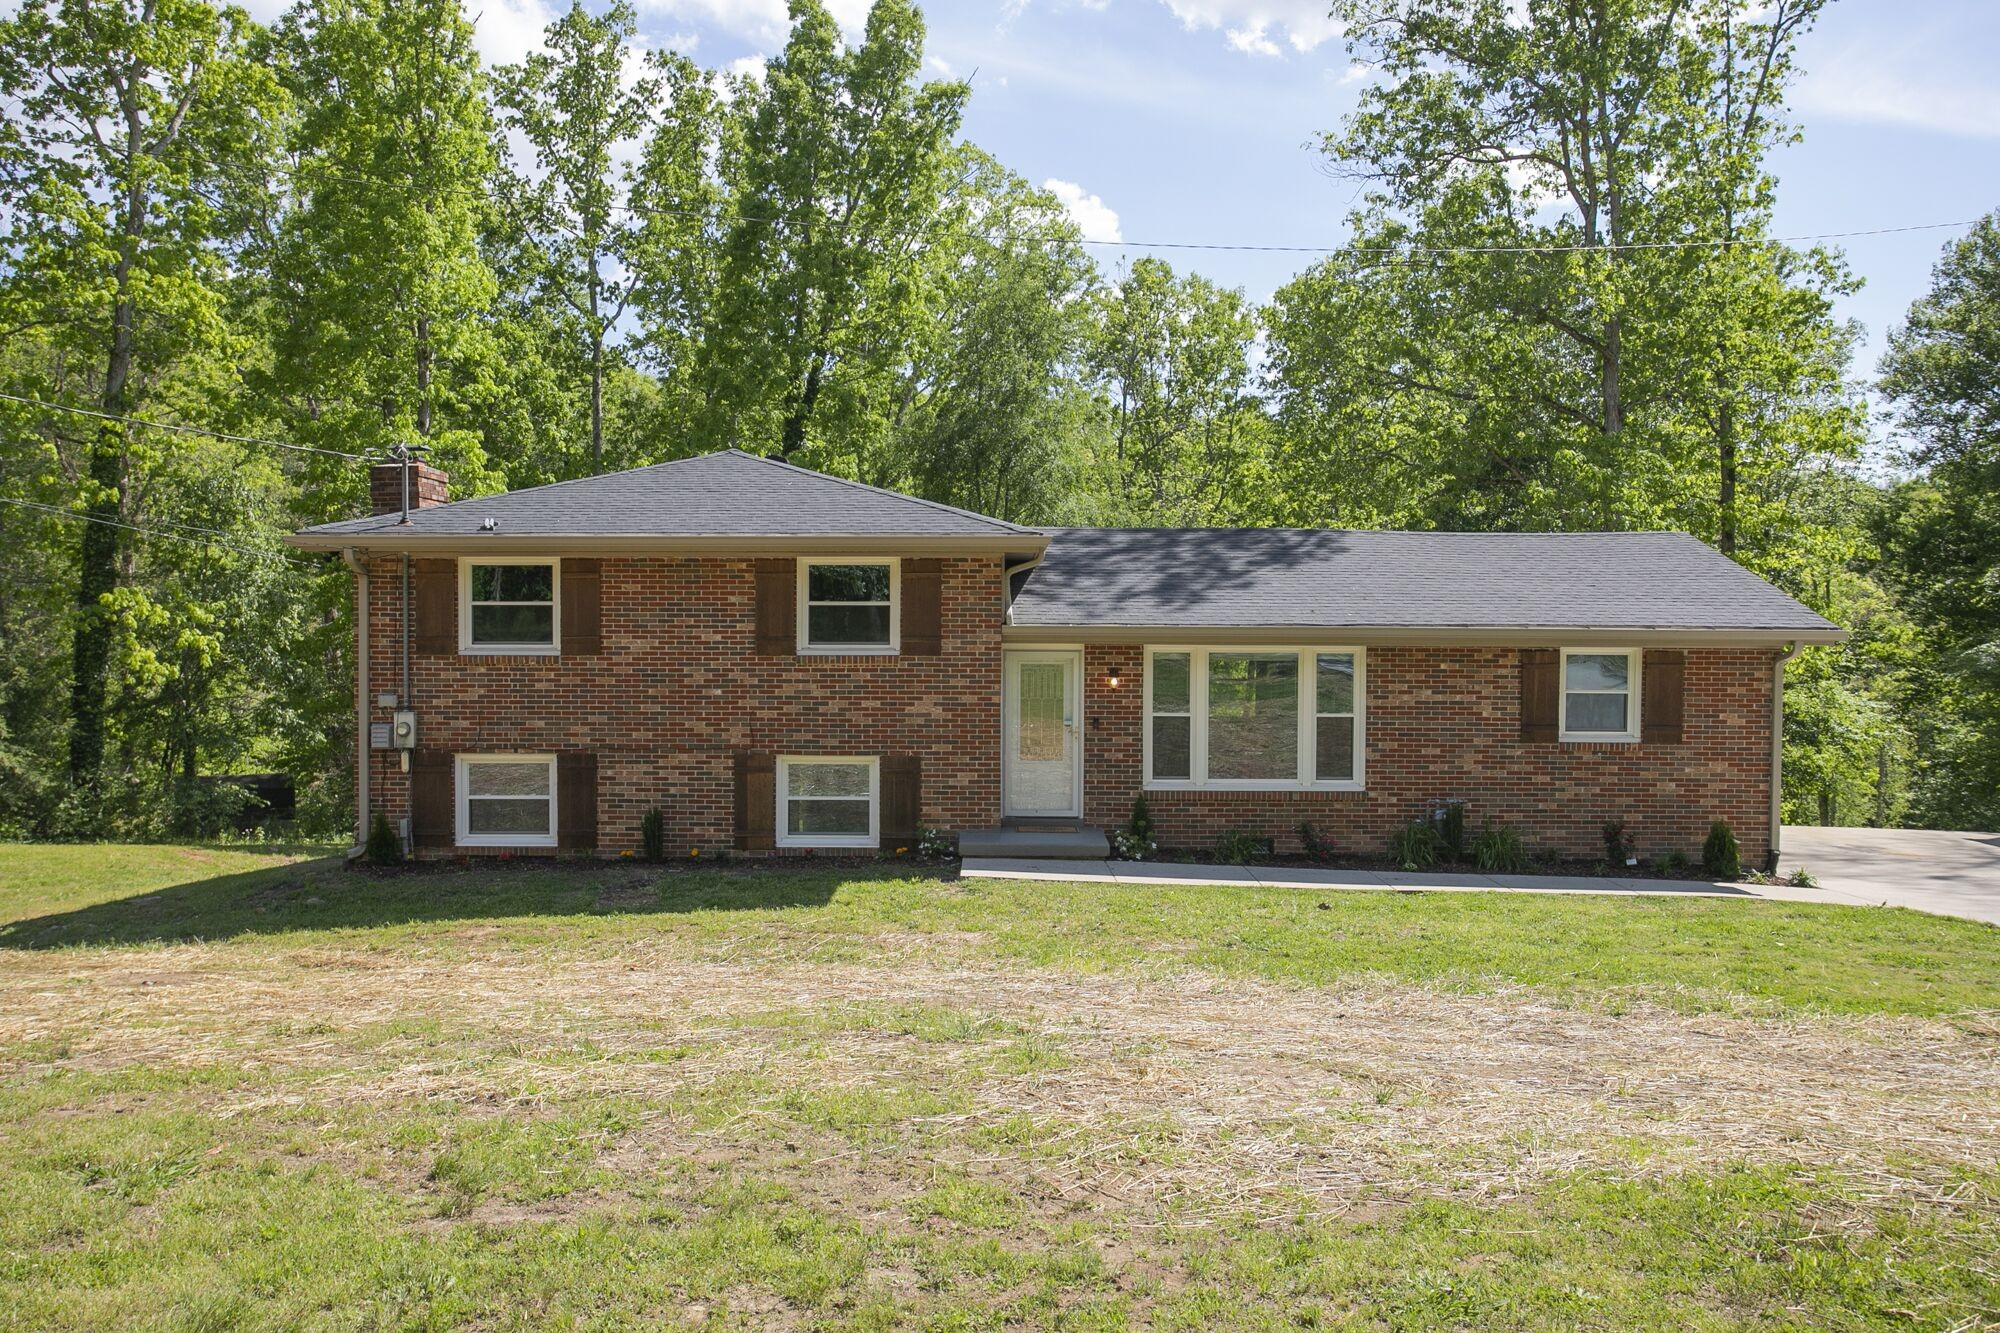 1345 Jackson Cabin Rd, Kingston Springs, TN 37082 - Kingston Springs, TN real estate listing